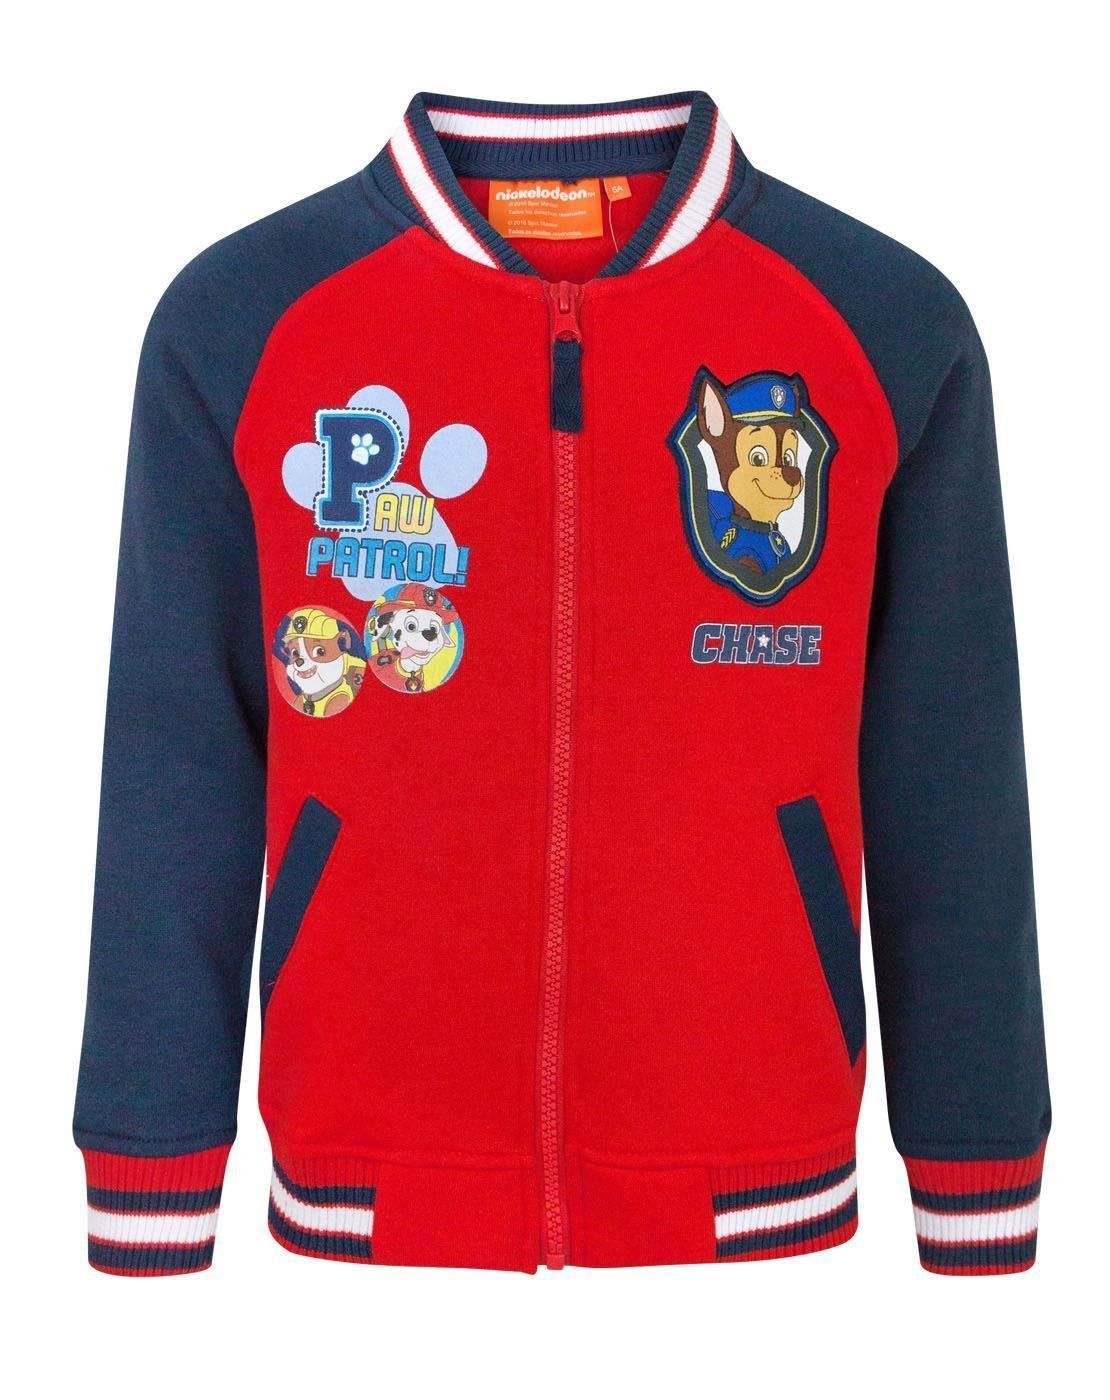 ceca3ed234 Paw Patrol Chase Boy's Bomber Jacket (3 Years). Officially licensed Paw  Patrol merchandise